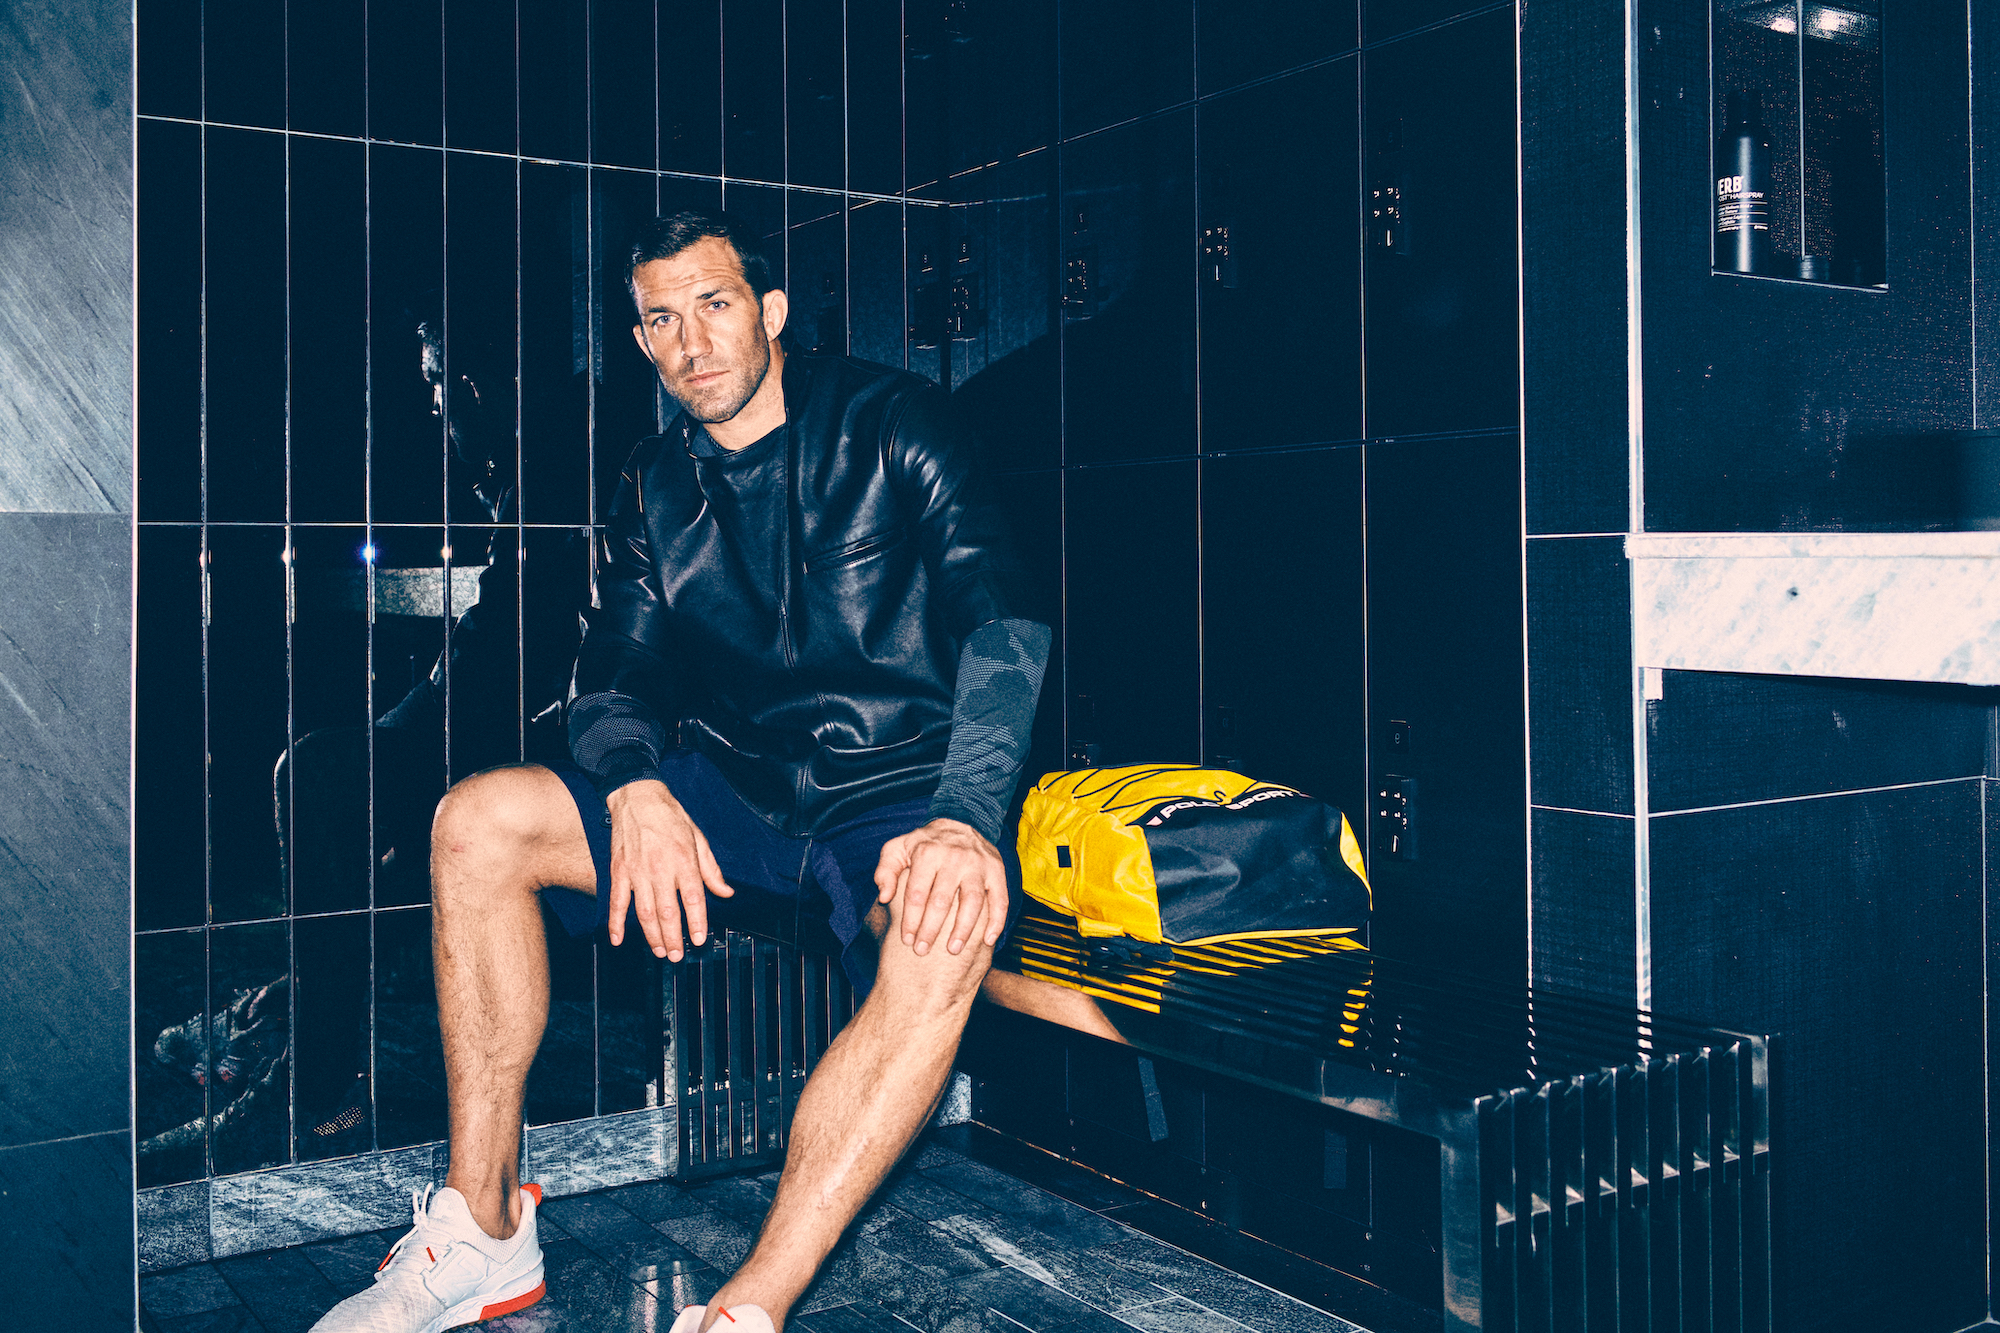 METROSPORT LUKE LOOK 11 1499 copy - slider, fitness, fashion - Luke Rockhold -  - Luke Rockhold